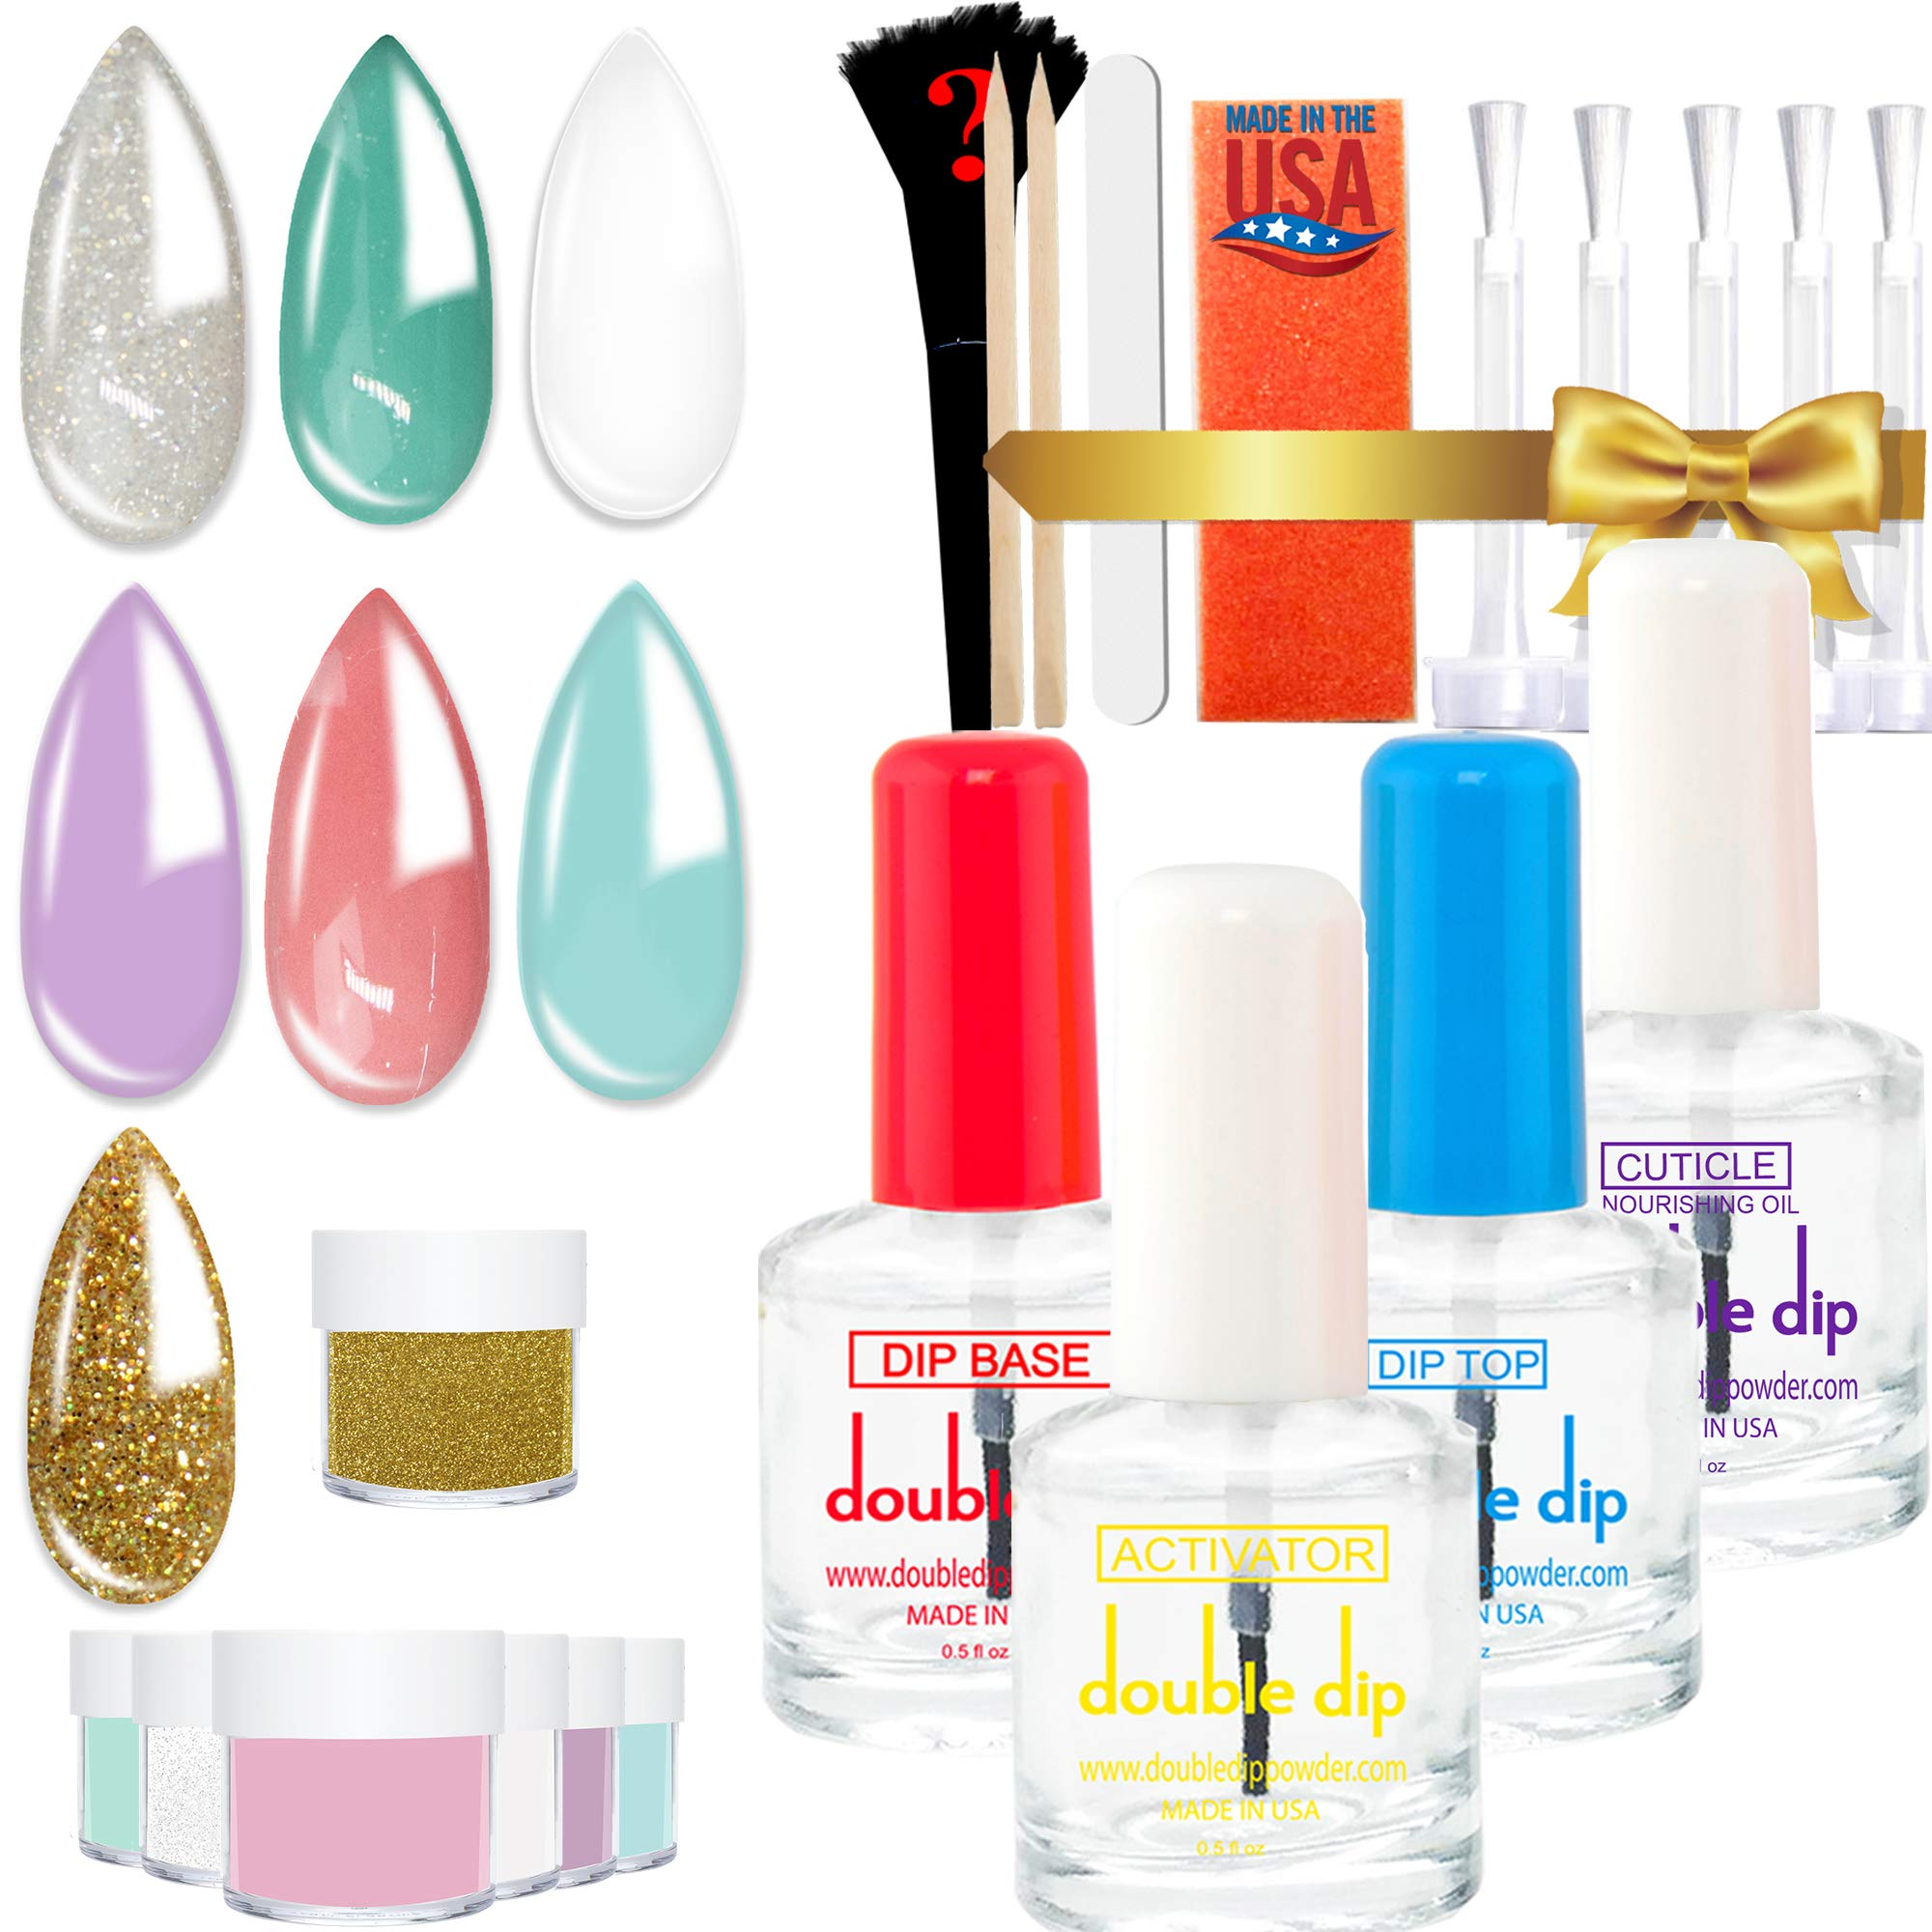 Dipping Powder Starter Kit 7 Colors | 2X POWDER VOLUME | MADE IN USA |Pastel Dip Powder System Starter Nail Kit| Essential & Portable Kit for Travel| Acrylic Dipping System for Nail Manicure Nail Art